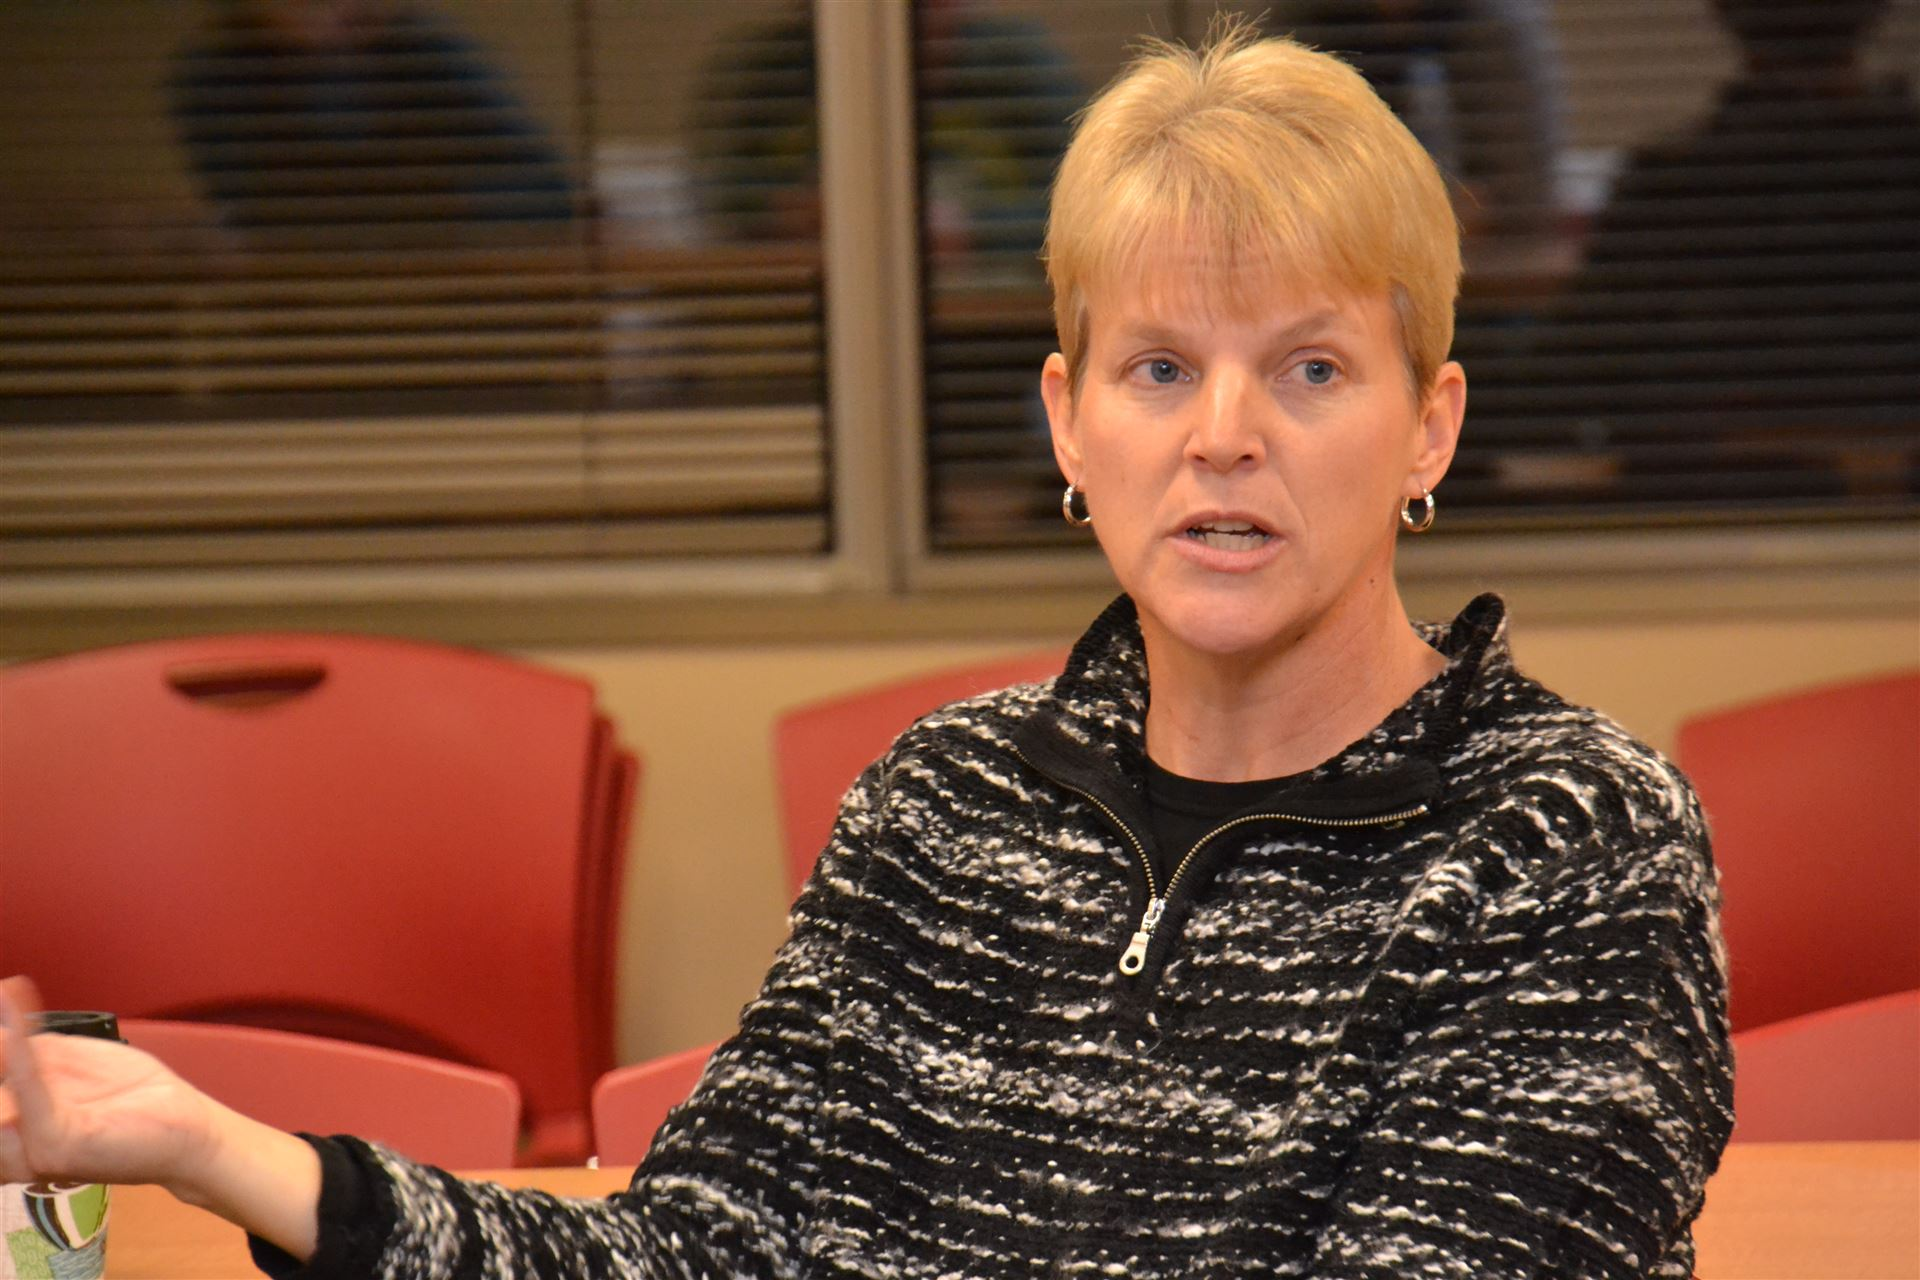 Otterbein Professor Focuses on Developing Cultural Connections for Westerville Parents